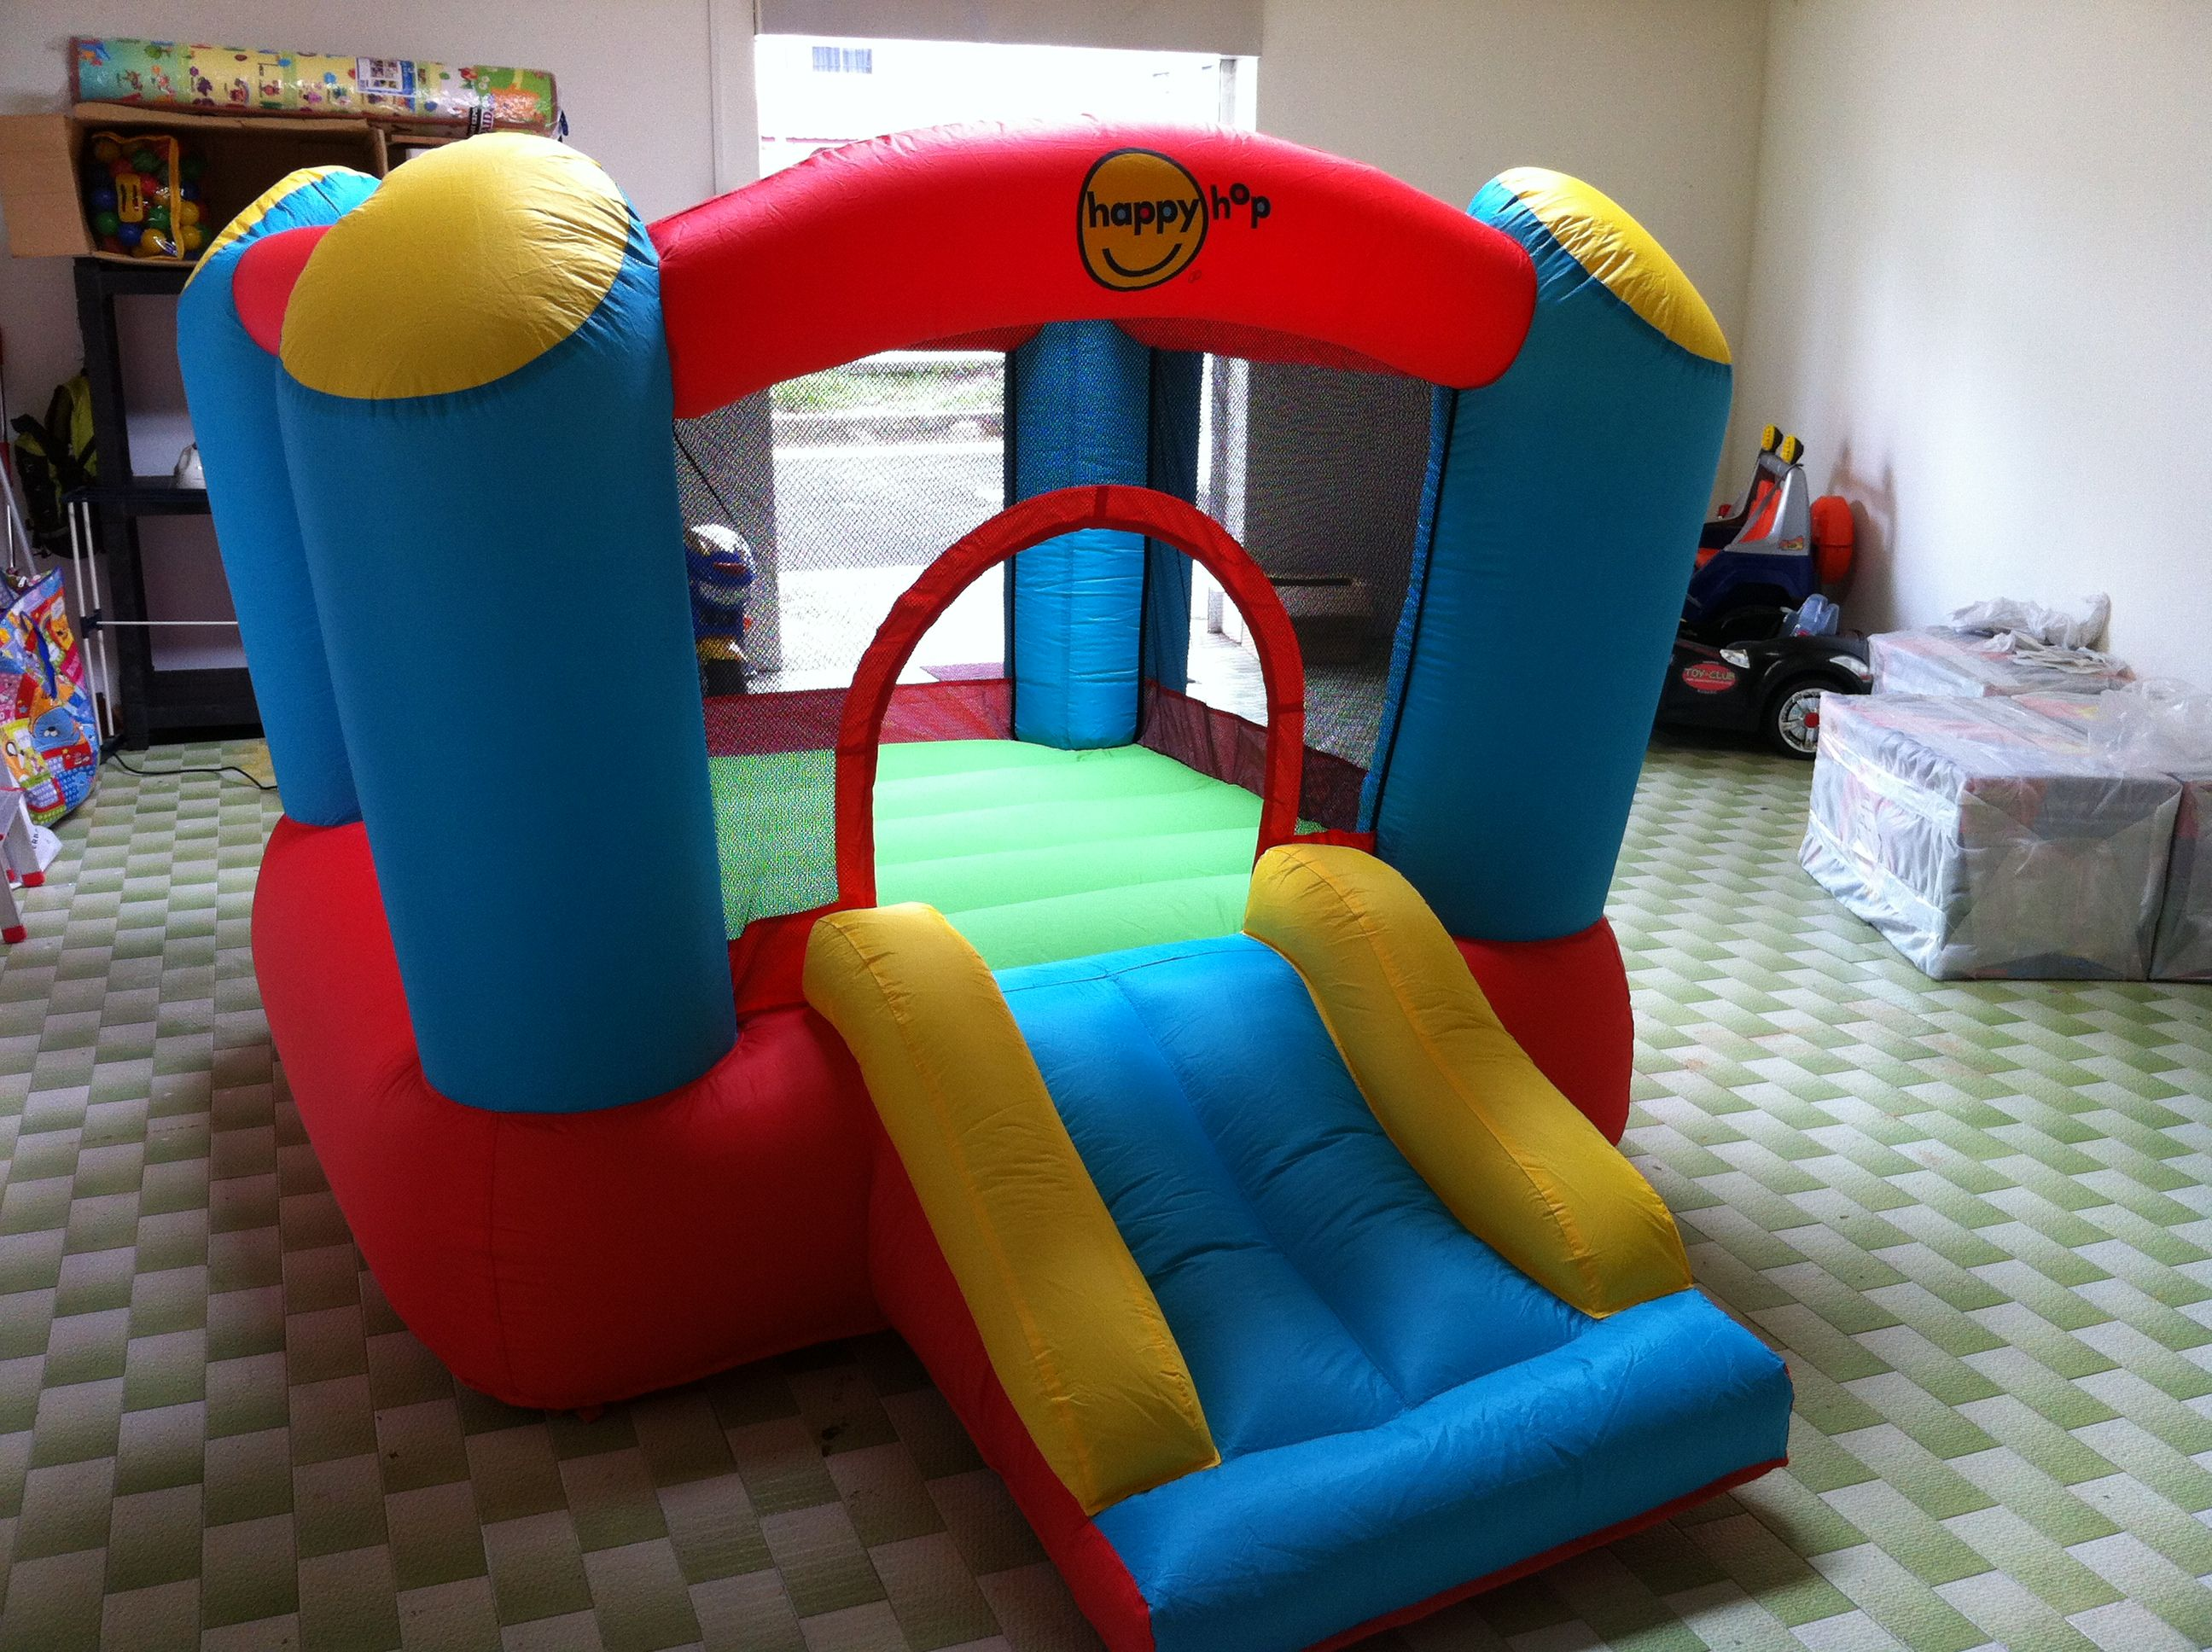 Jump and Slide Bouncy Castle in a Condo Apartment in Singapore